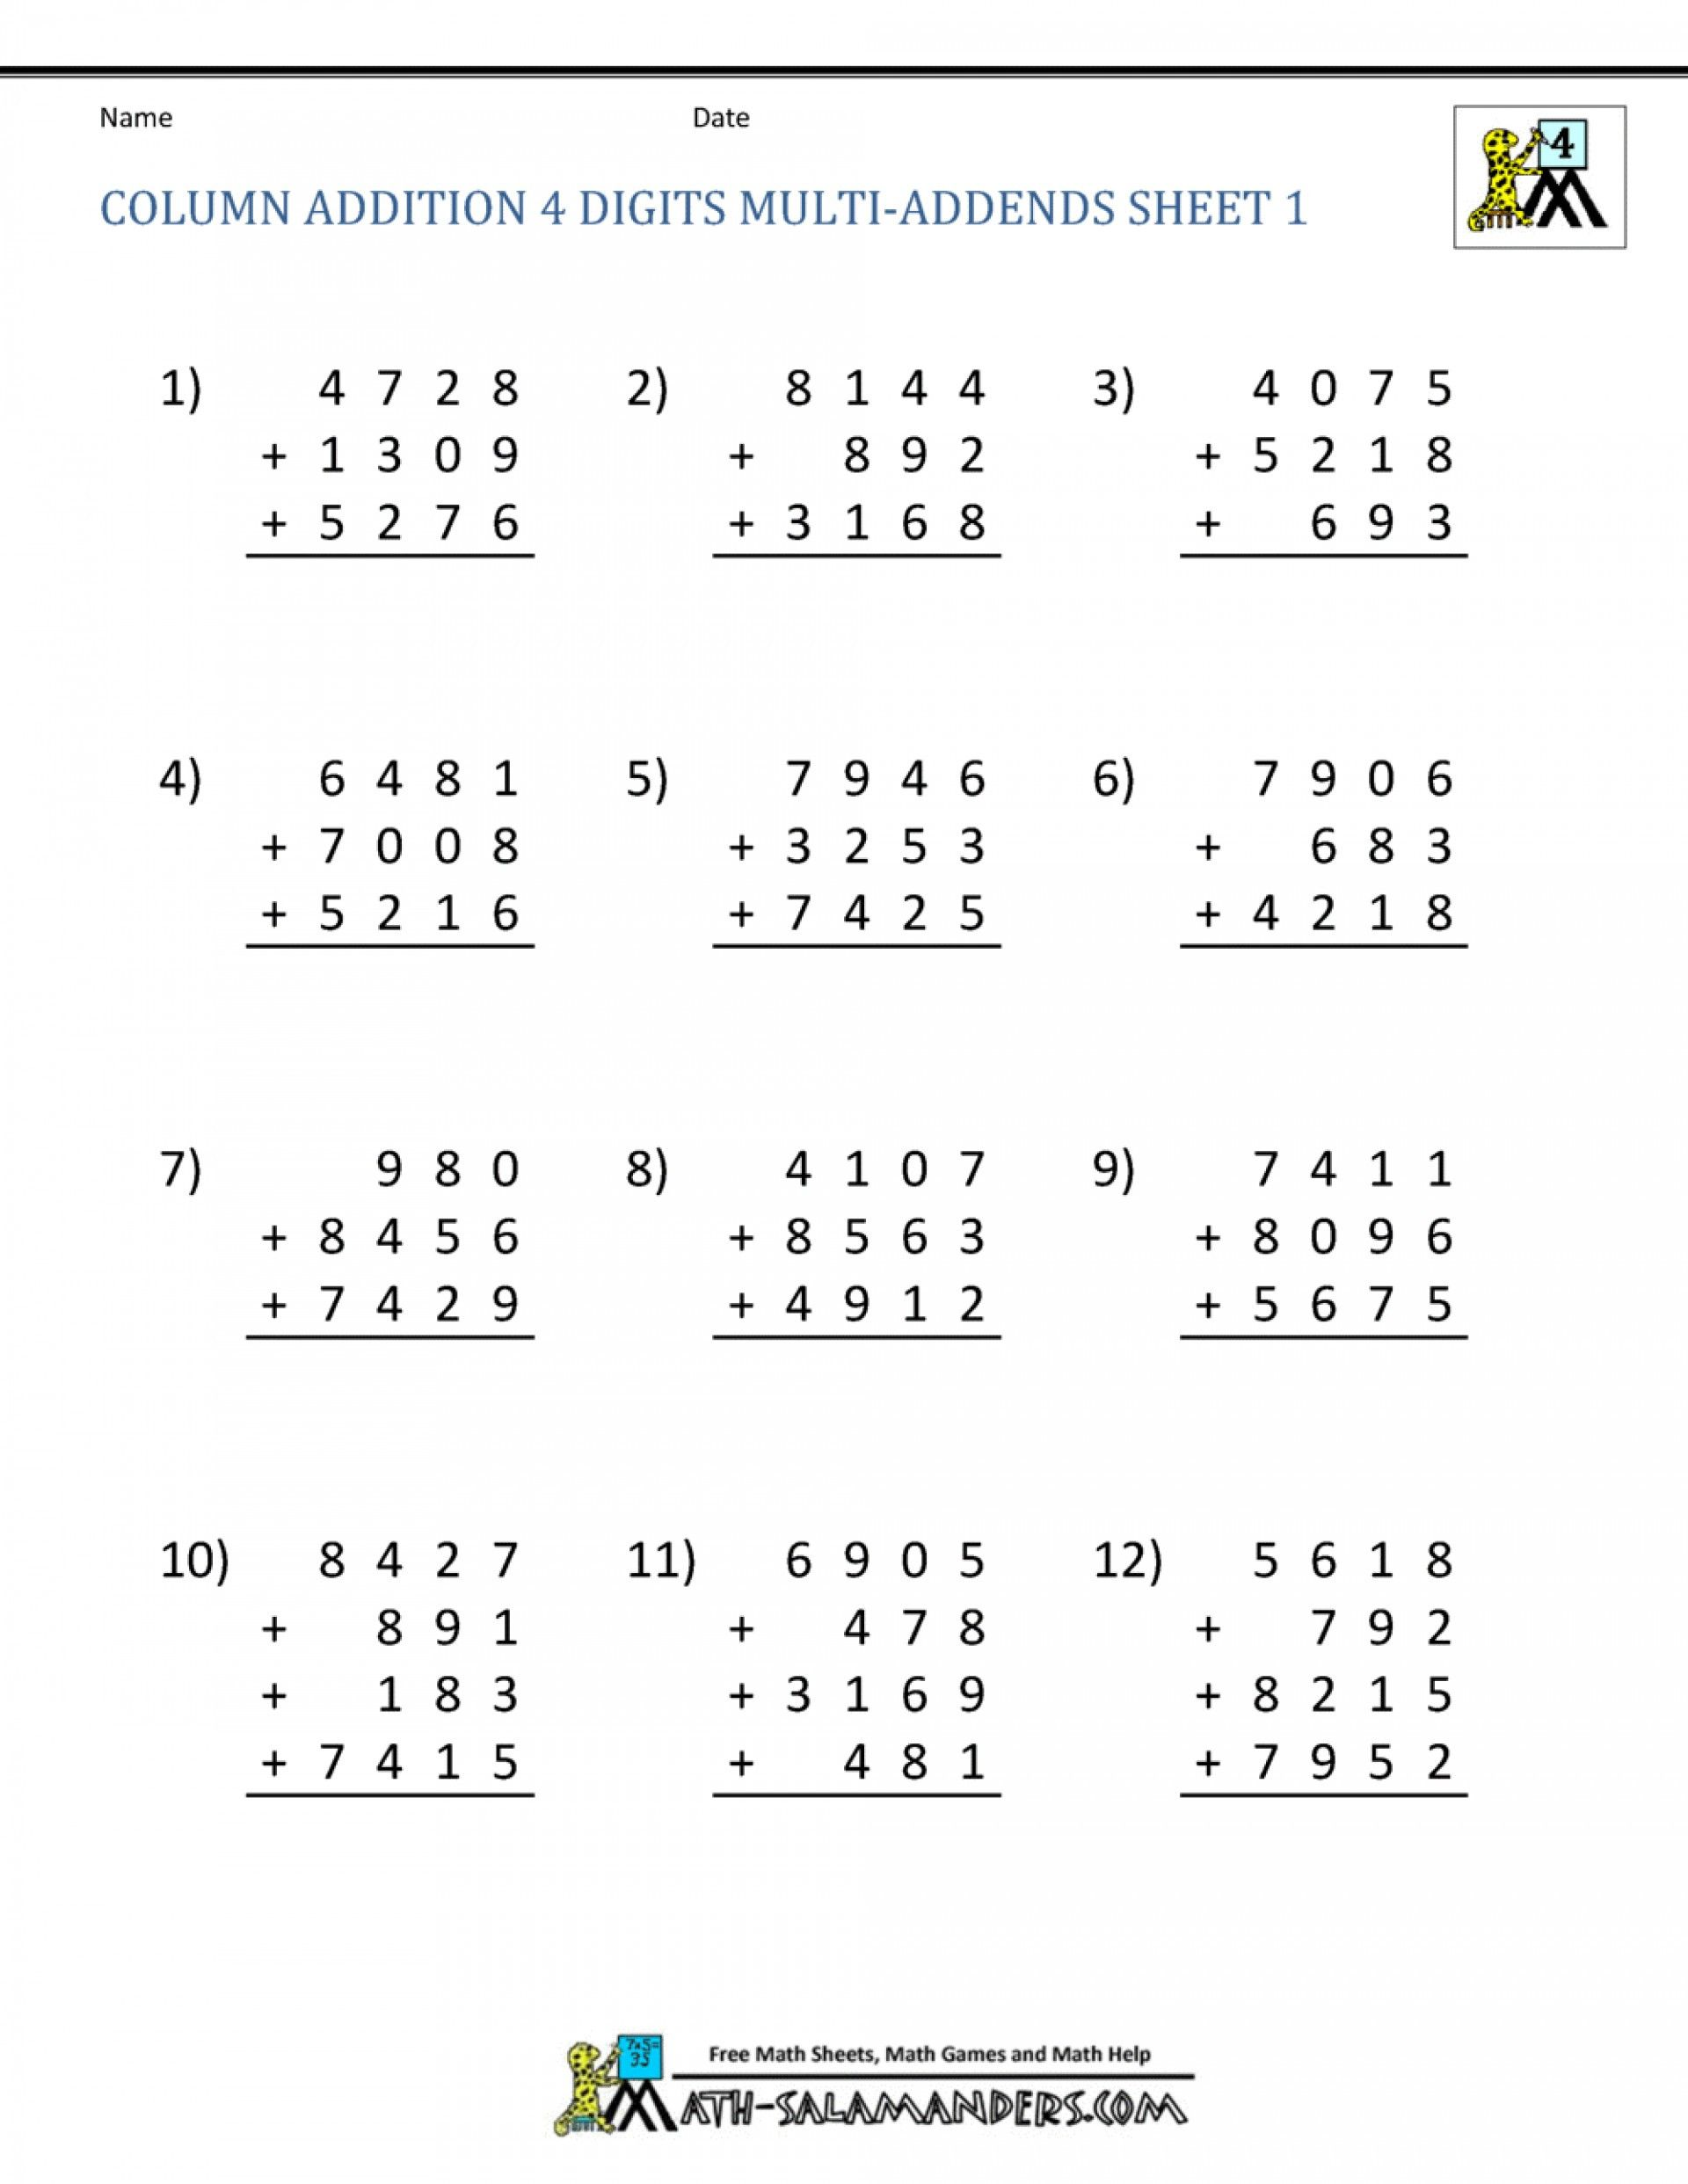 4 Free Math Worksheets Second Grade 2 Addition Add 4 2 Digit Numbers In Columns 003 Worksheet Math Worksheets Free Math Worksheets Free Math [ 2484 x 1920 Pixel ]